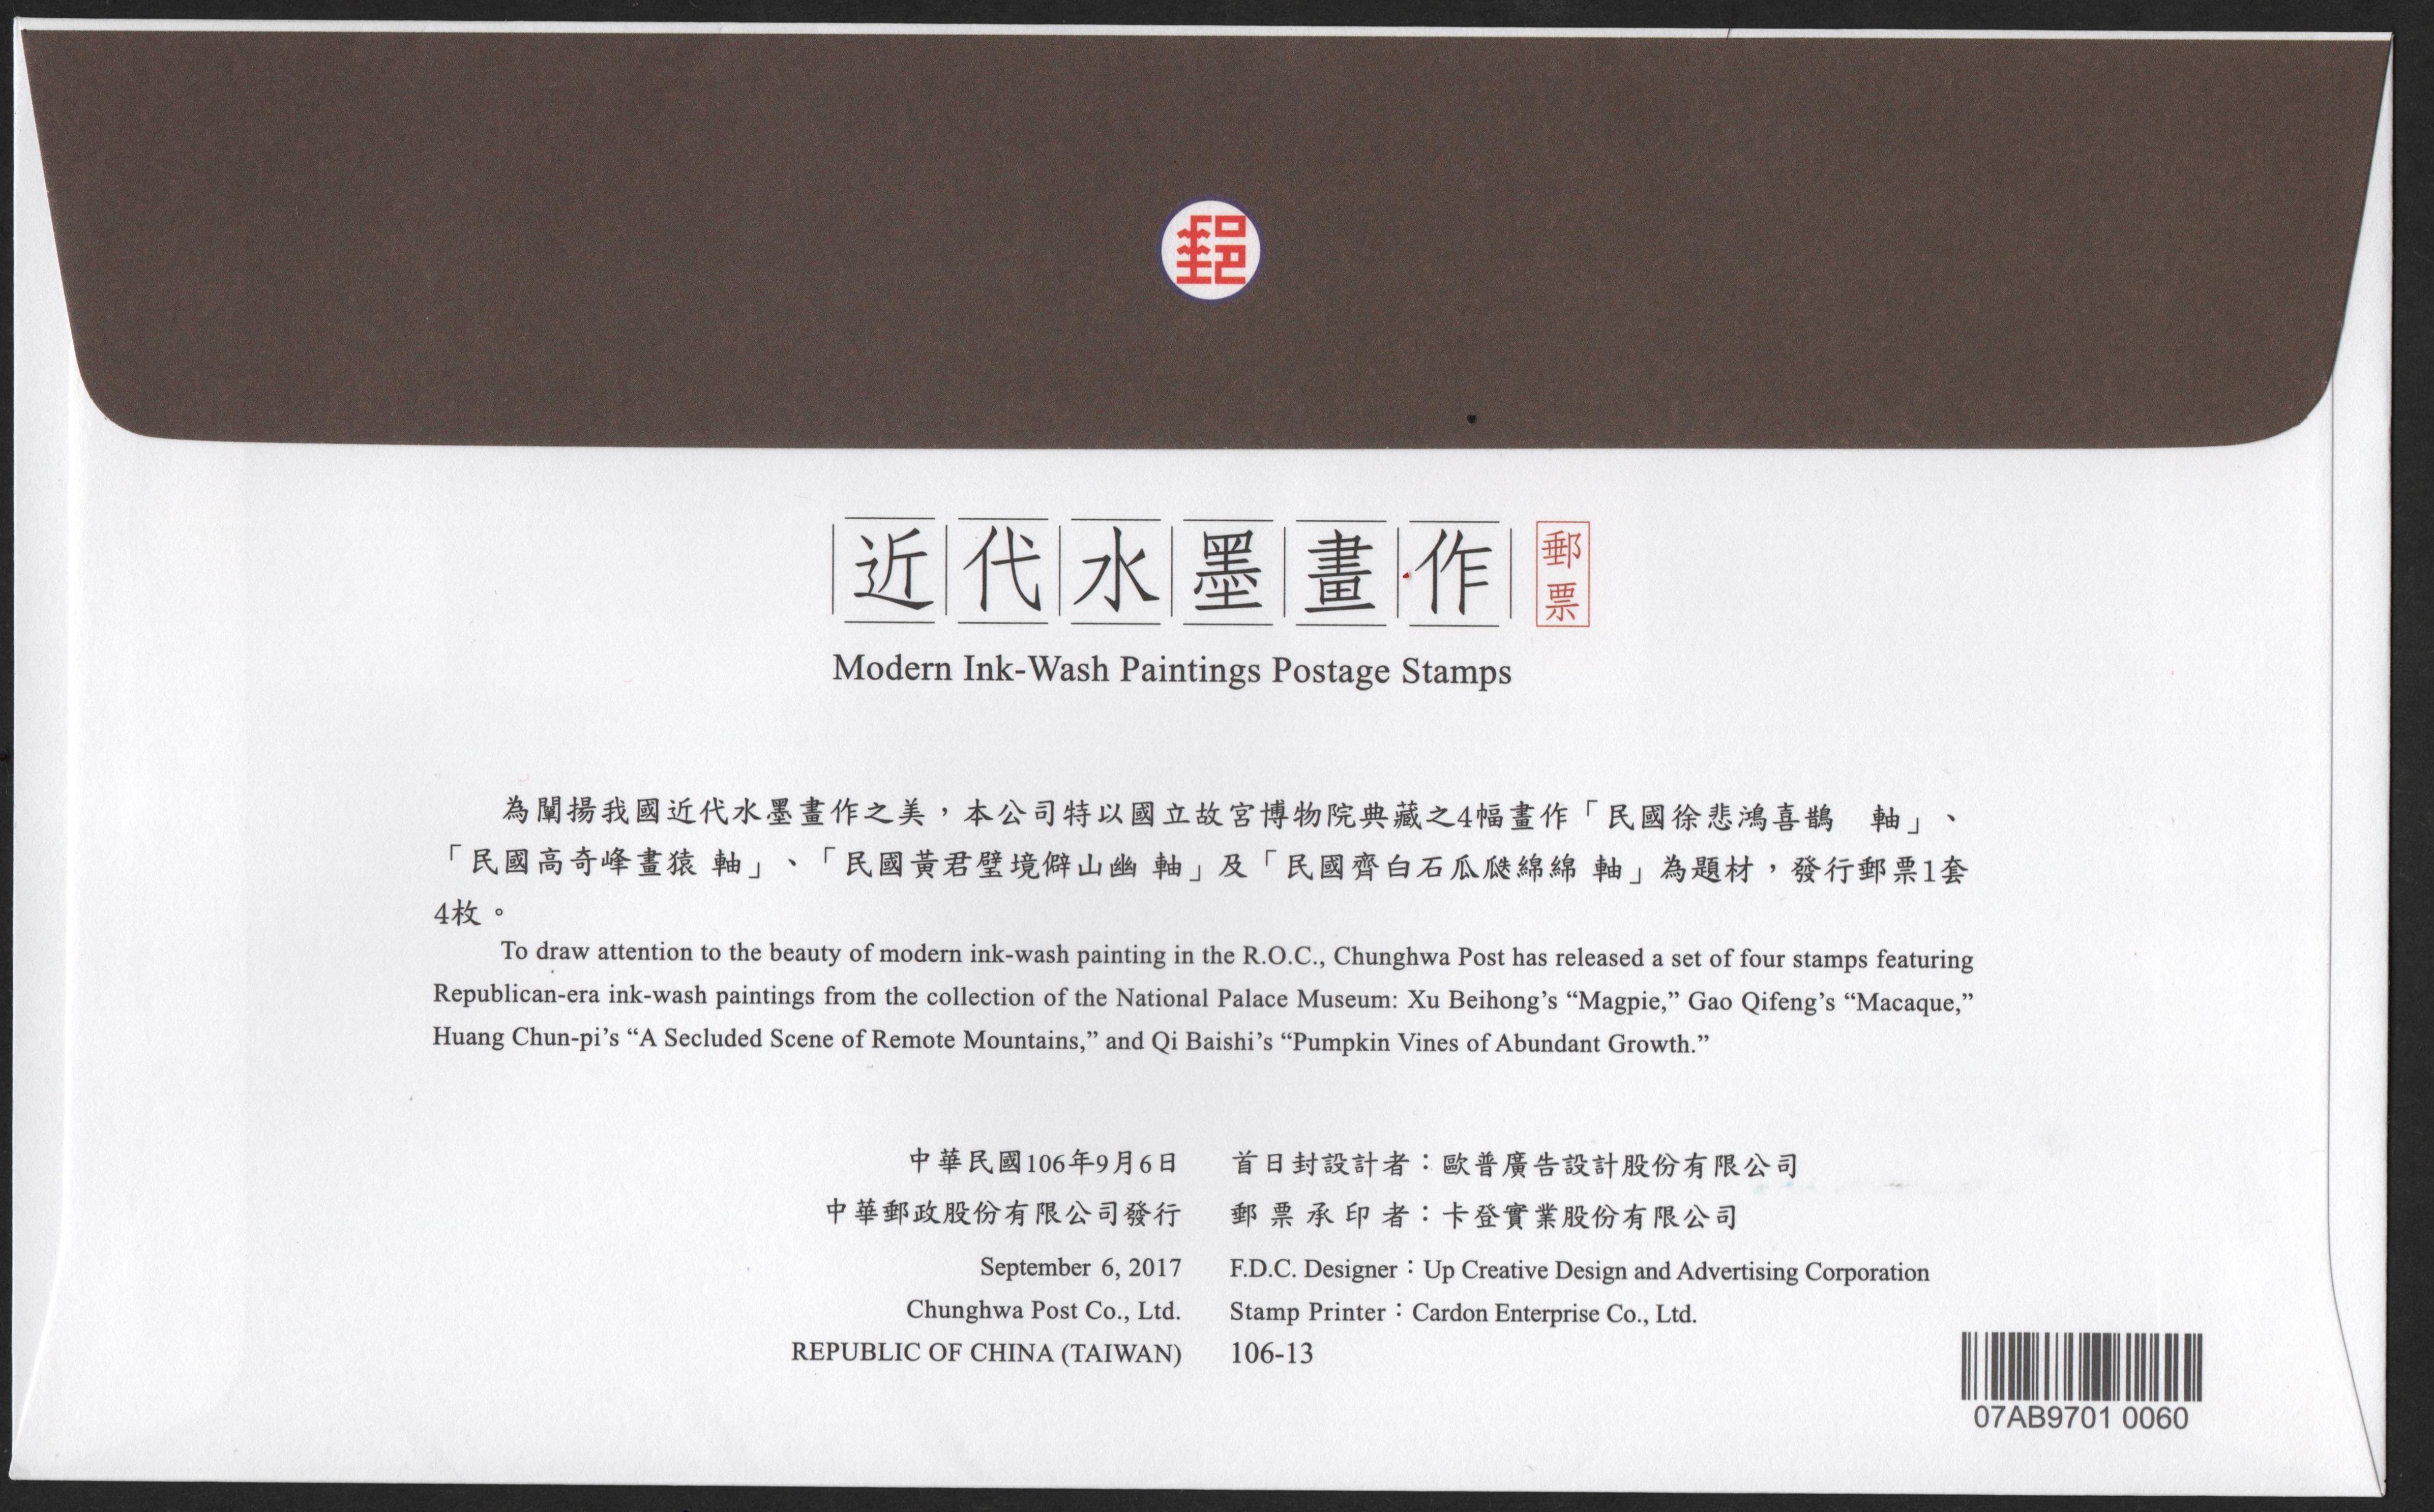 Republic of China (Taiwan) - Michel #4189 (2017) official Chungwha Post first day cover